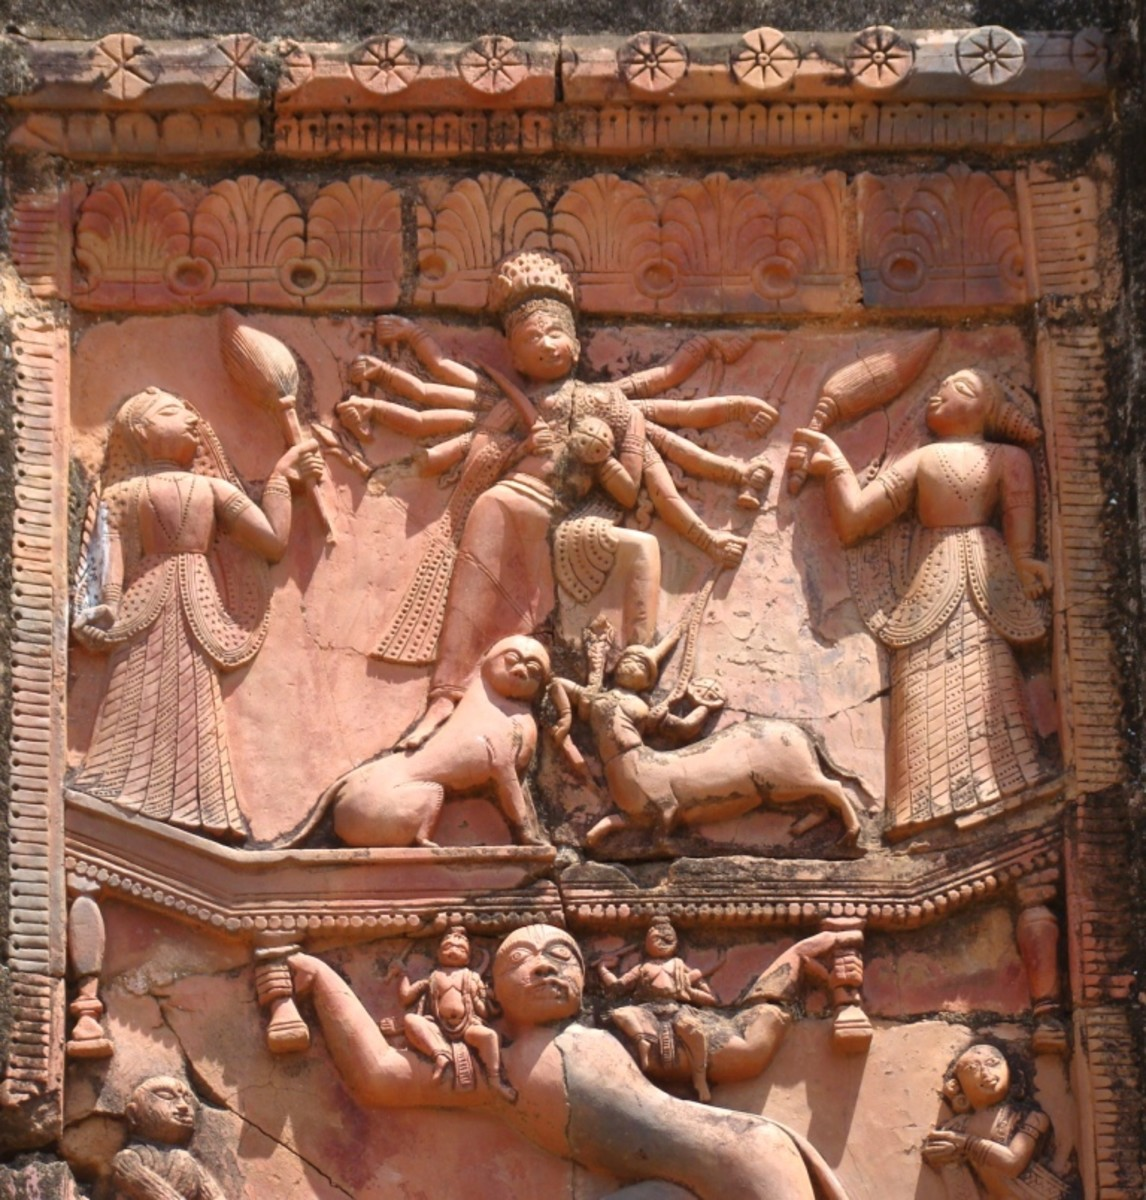 A scene from the epic Ramayana where Hanuman, the monkey Lord is carrying Lord Rama & Lakshmana on his shoulder & at the same time carrying Goddess Durga with his hands.